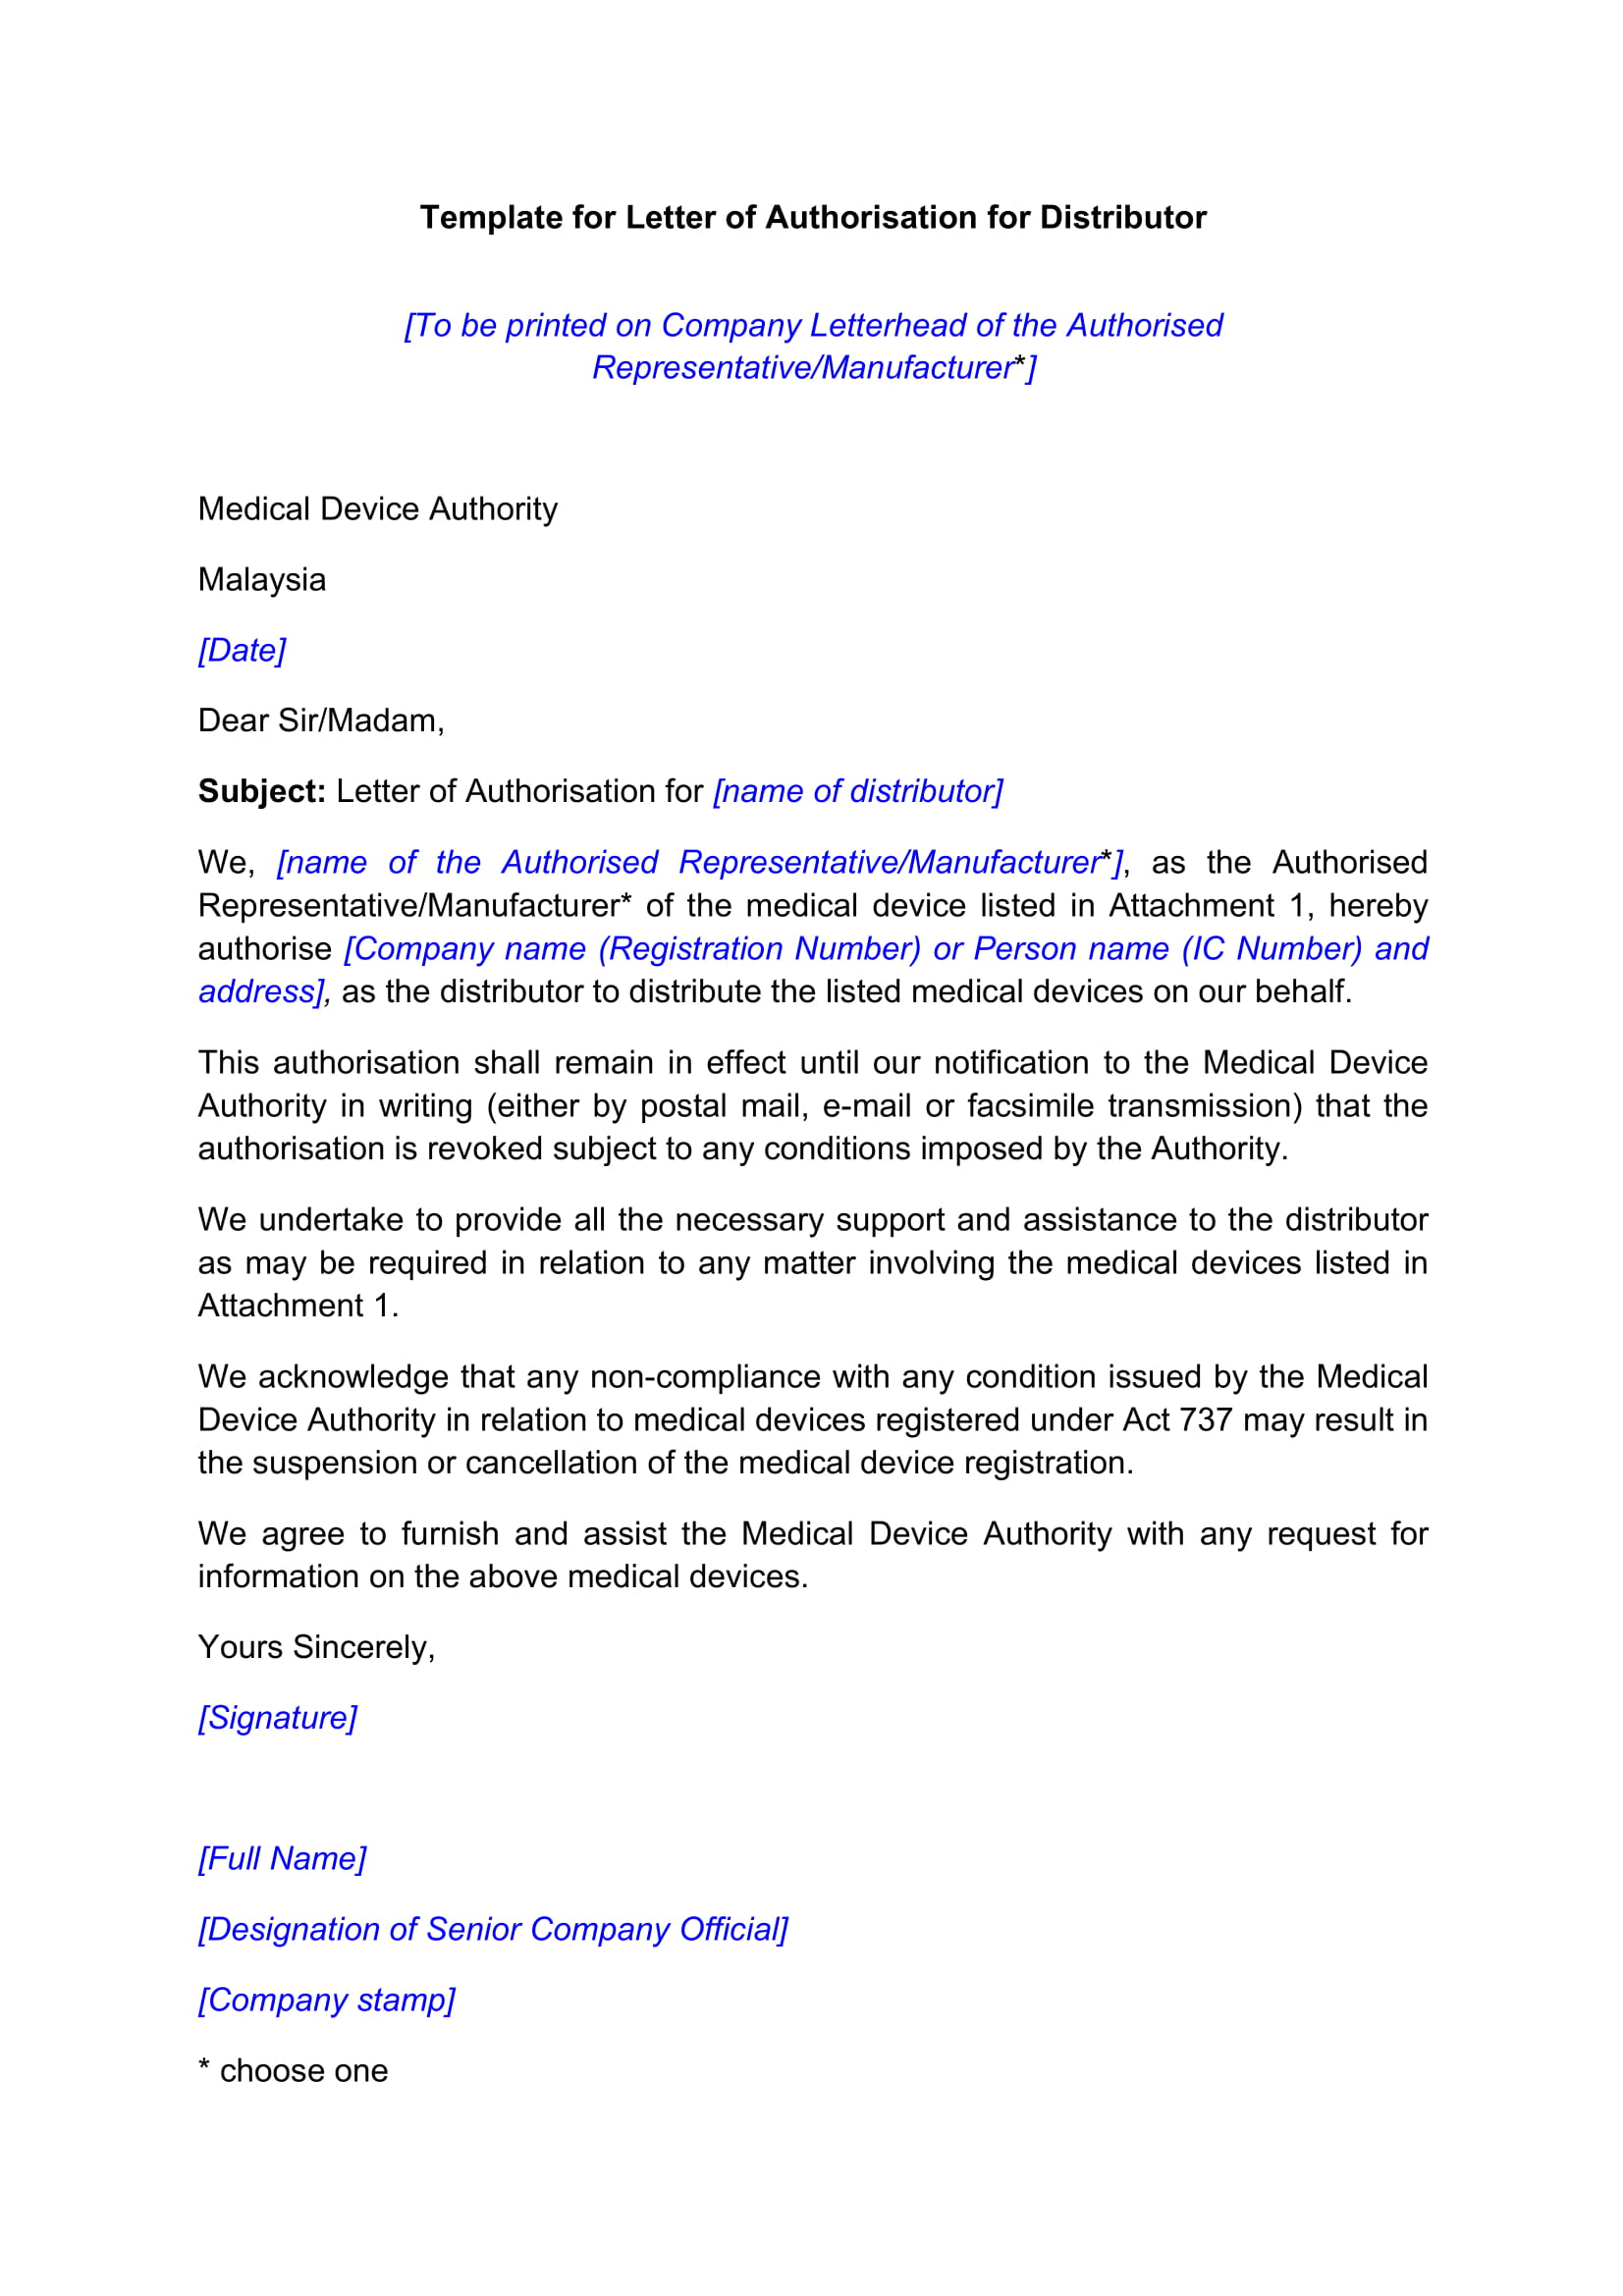 letter of authorisation distributor